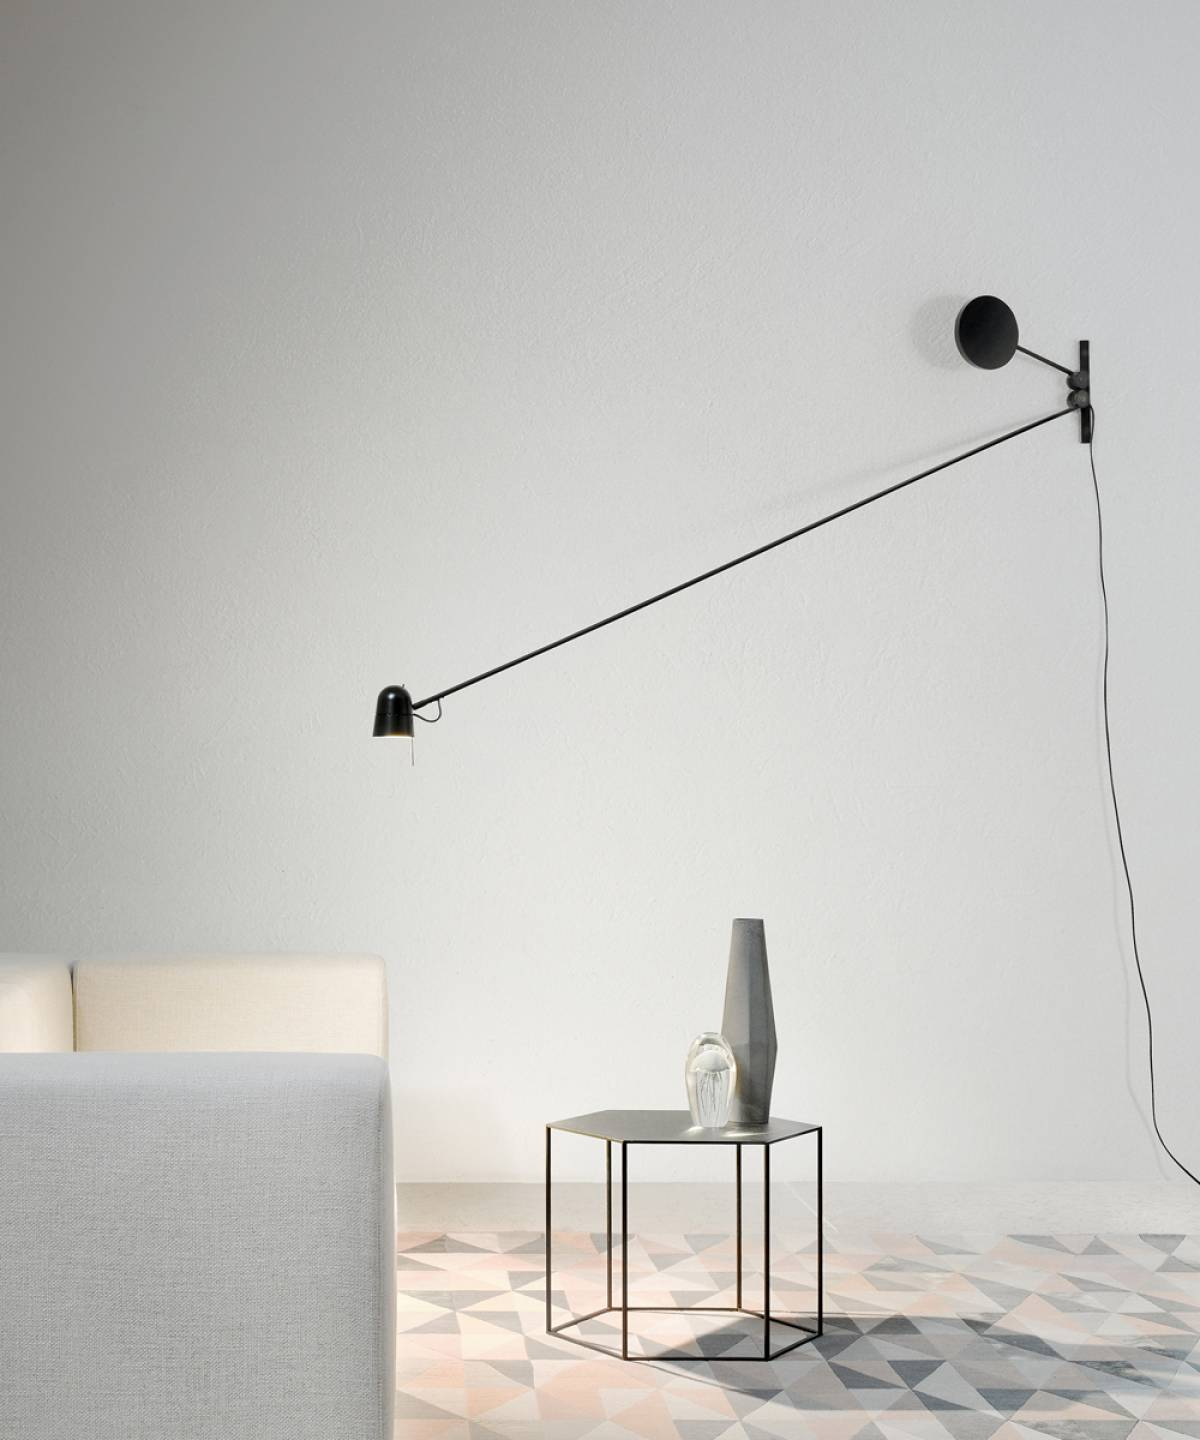 1 Counterbalance wall lamp Luceplan